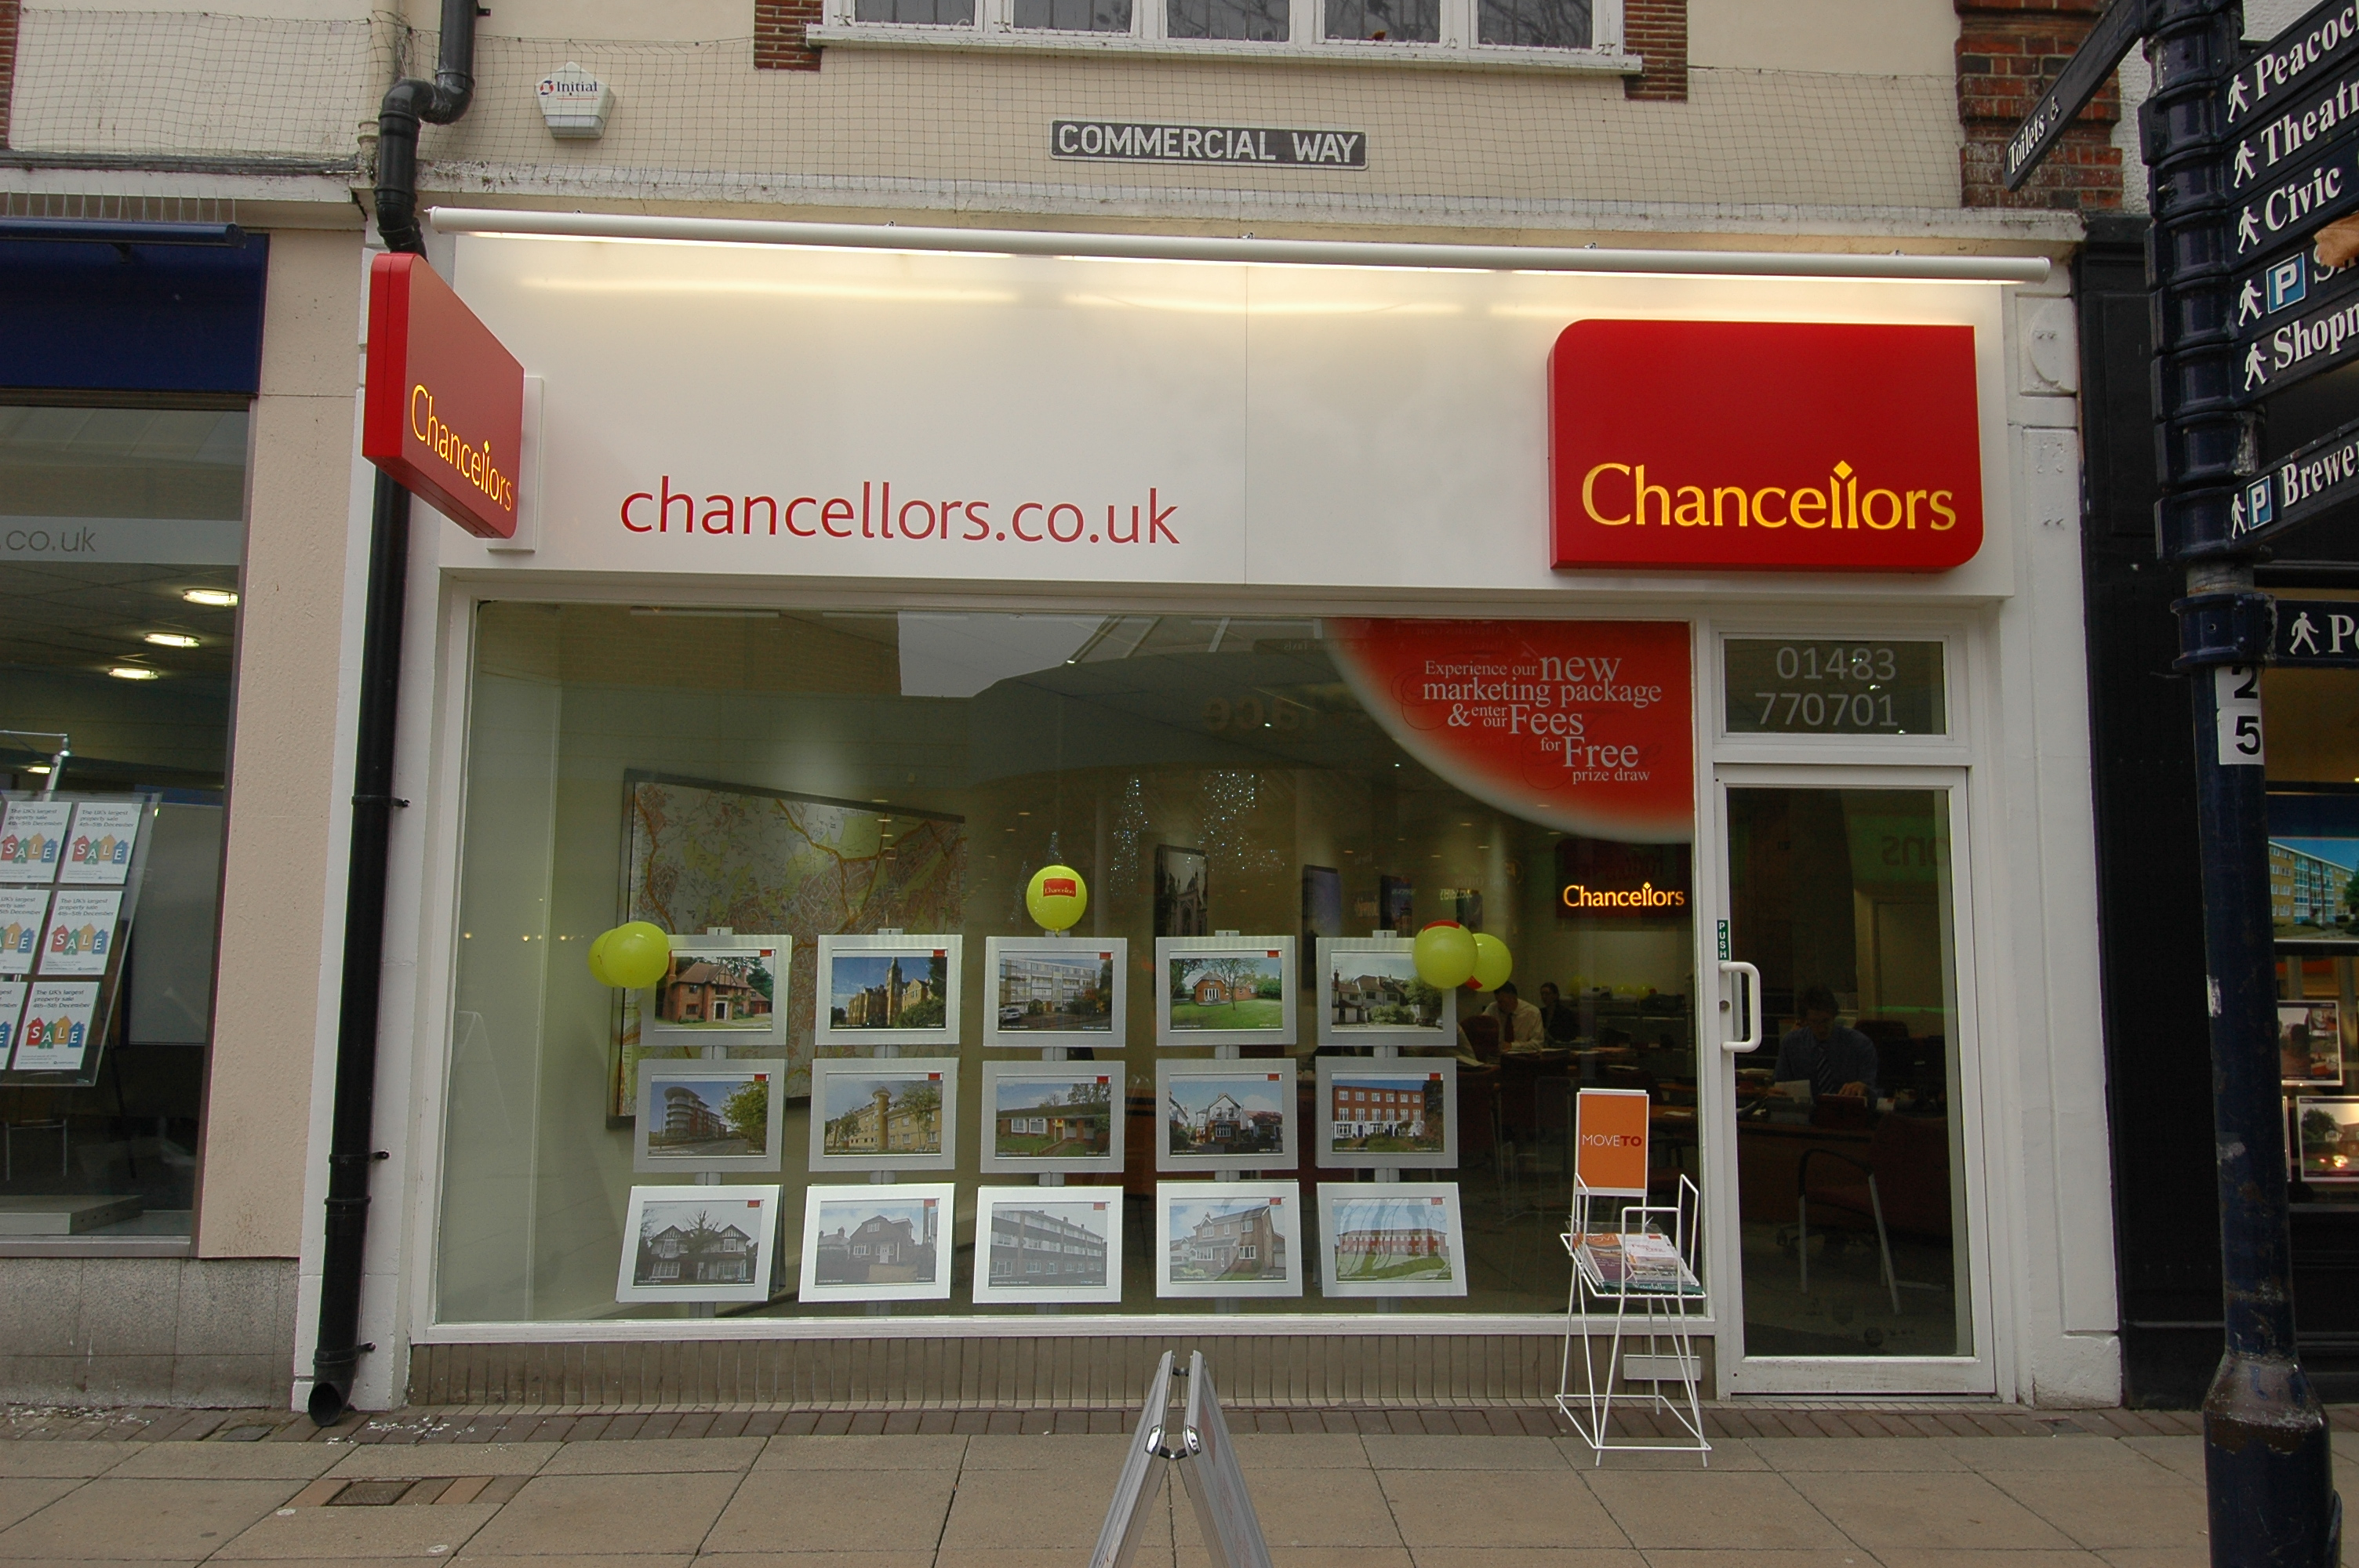 Chancellors - Woking Estate Agents - Woking, Surrey GU21 6JN - 01483 770701 | ShowMeLocal.com